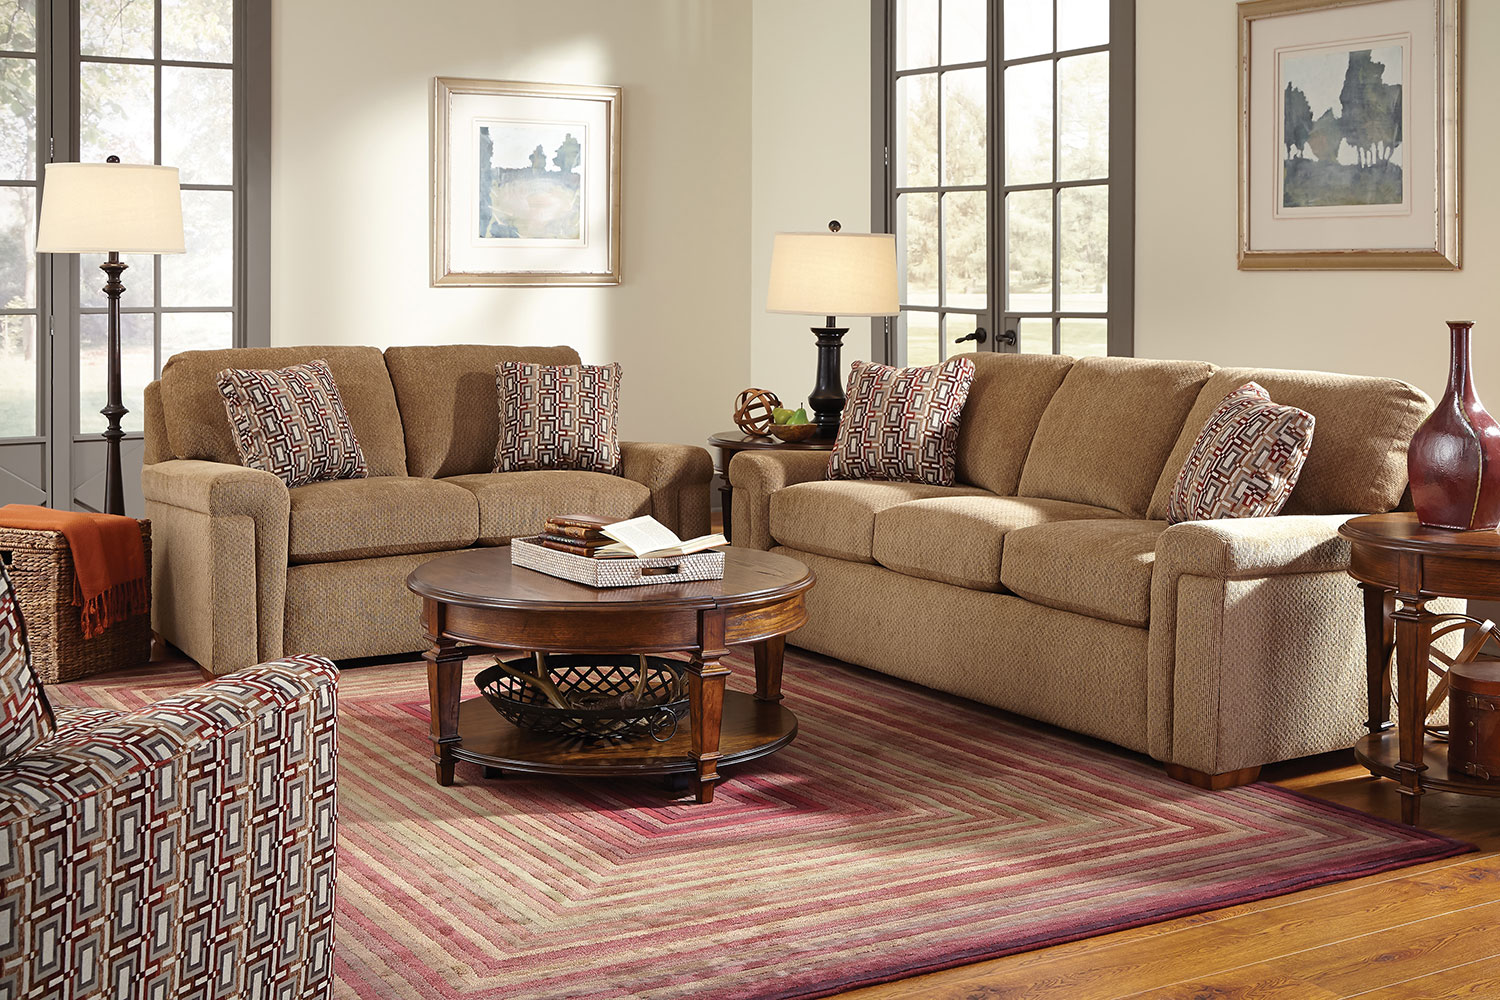 Hailey sofa cafe levin furniture for Levin furniture living room chairs